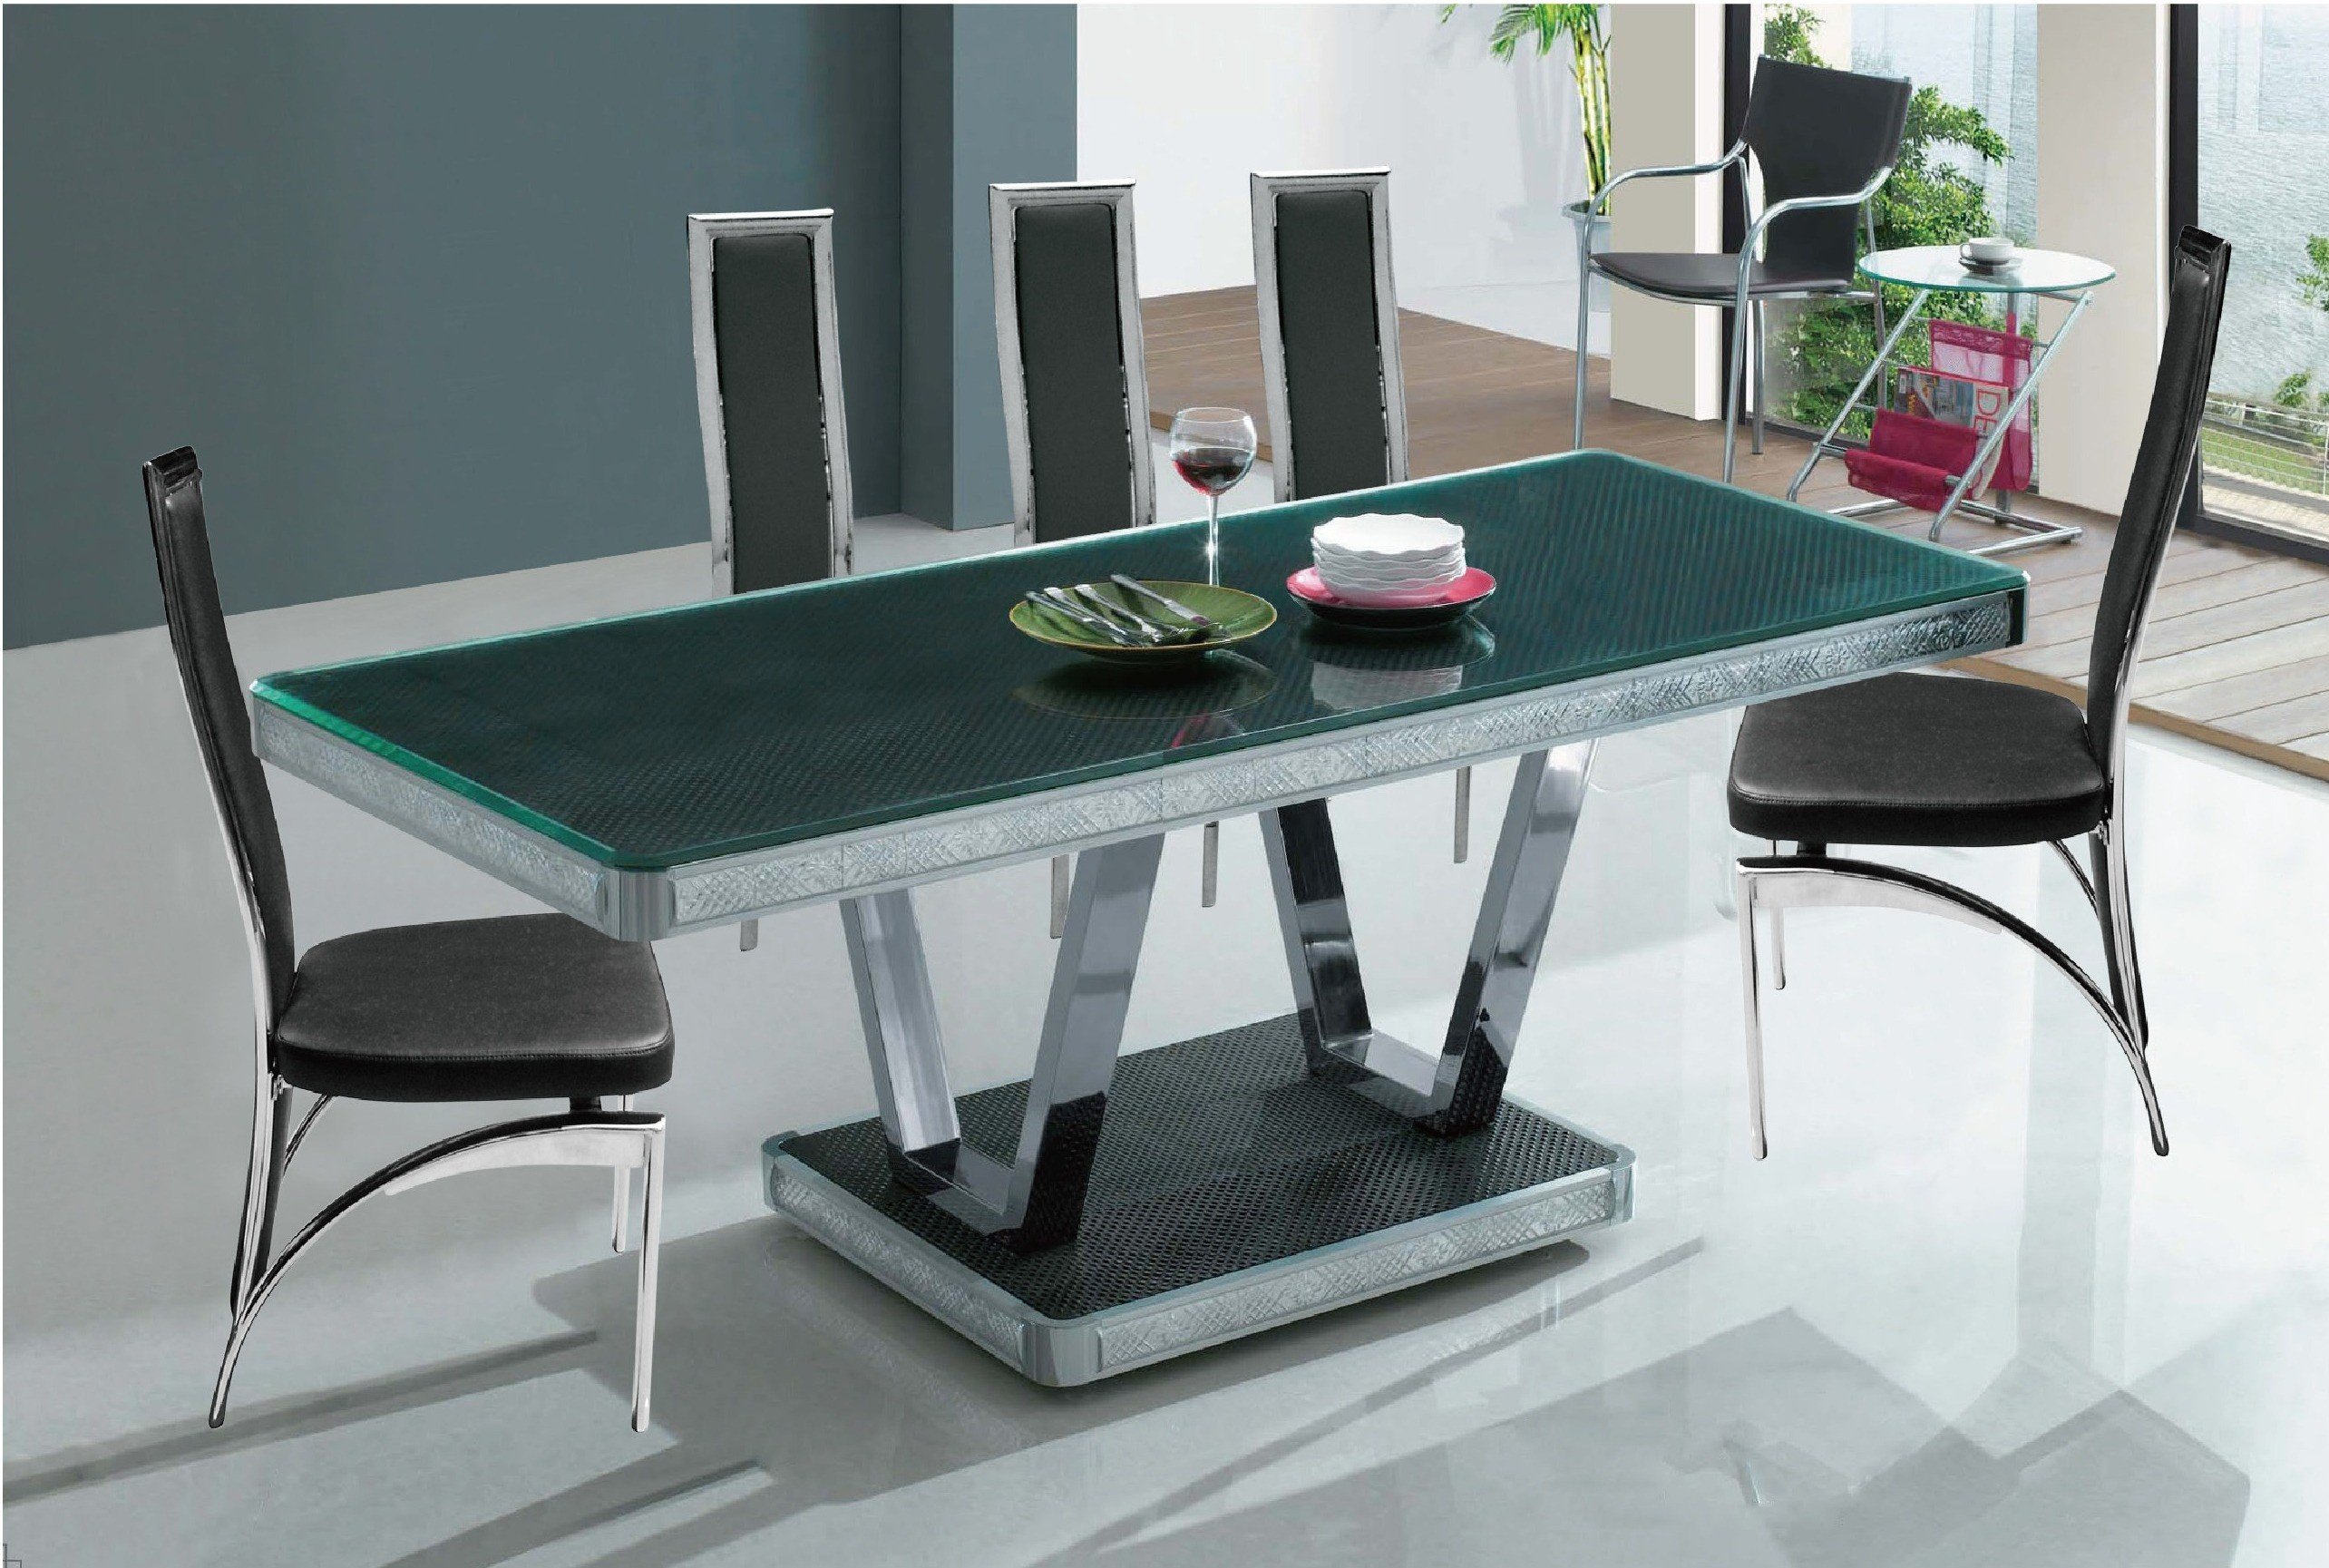 865t_glass_dining_table_7812_chair_1